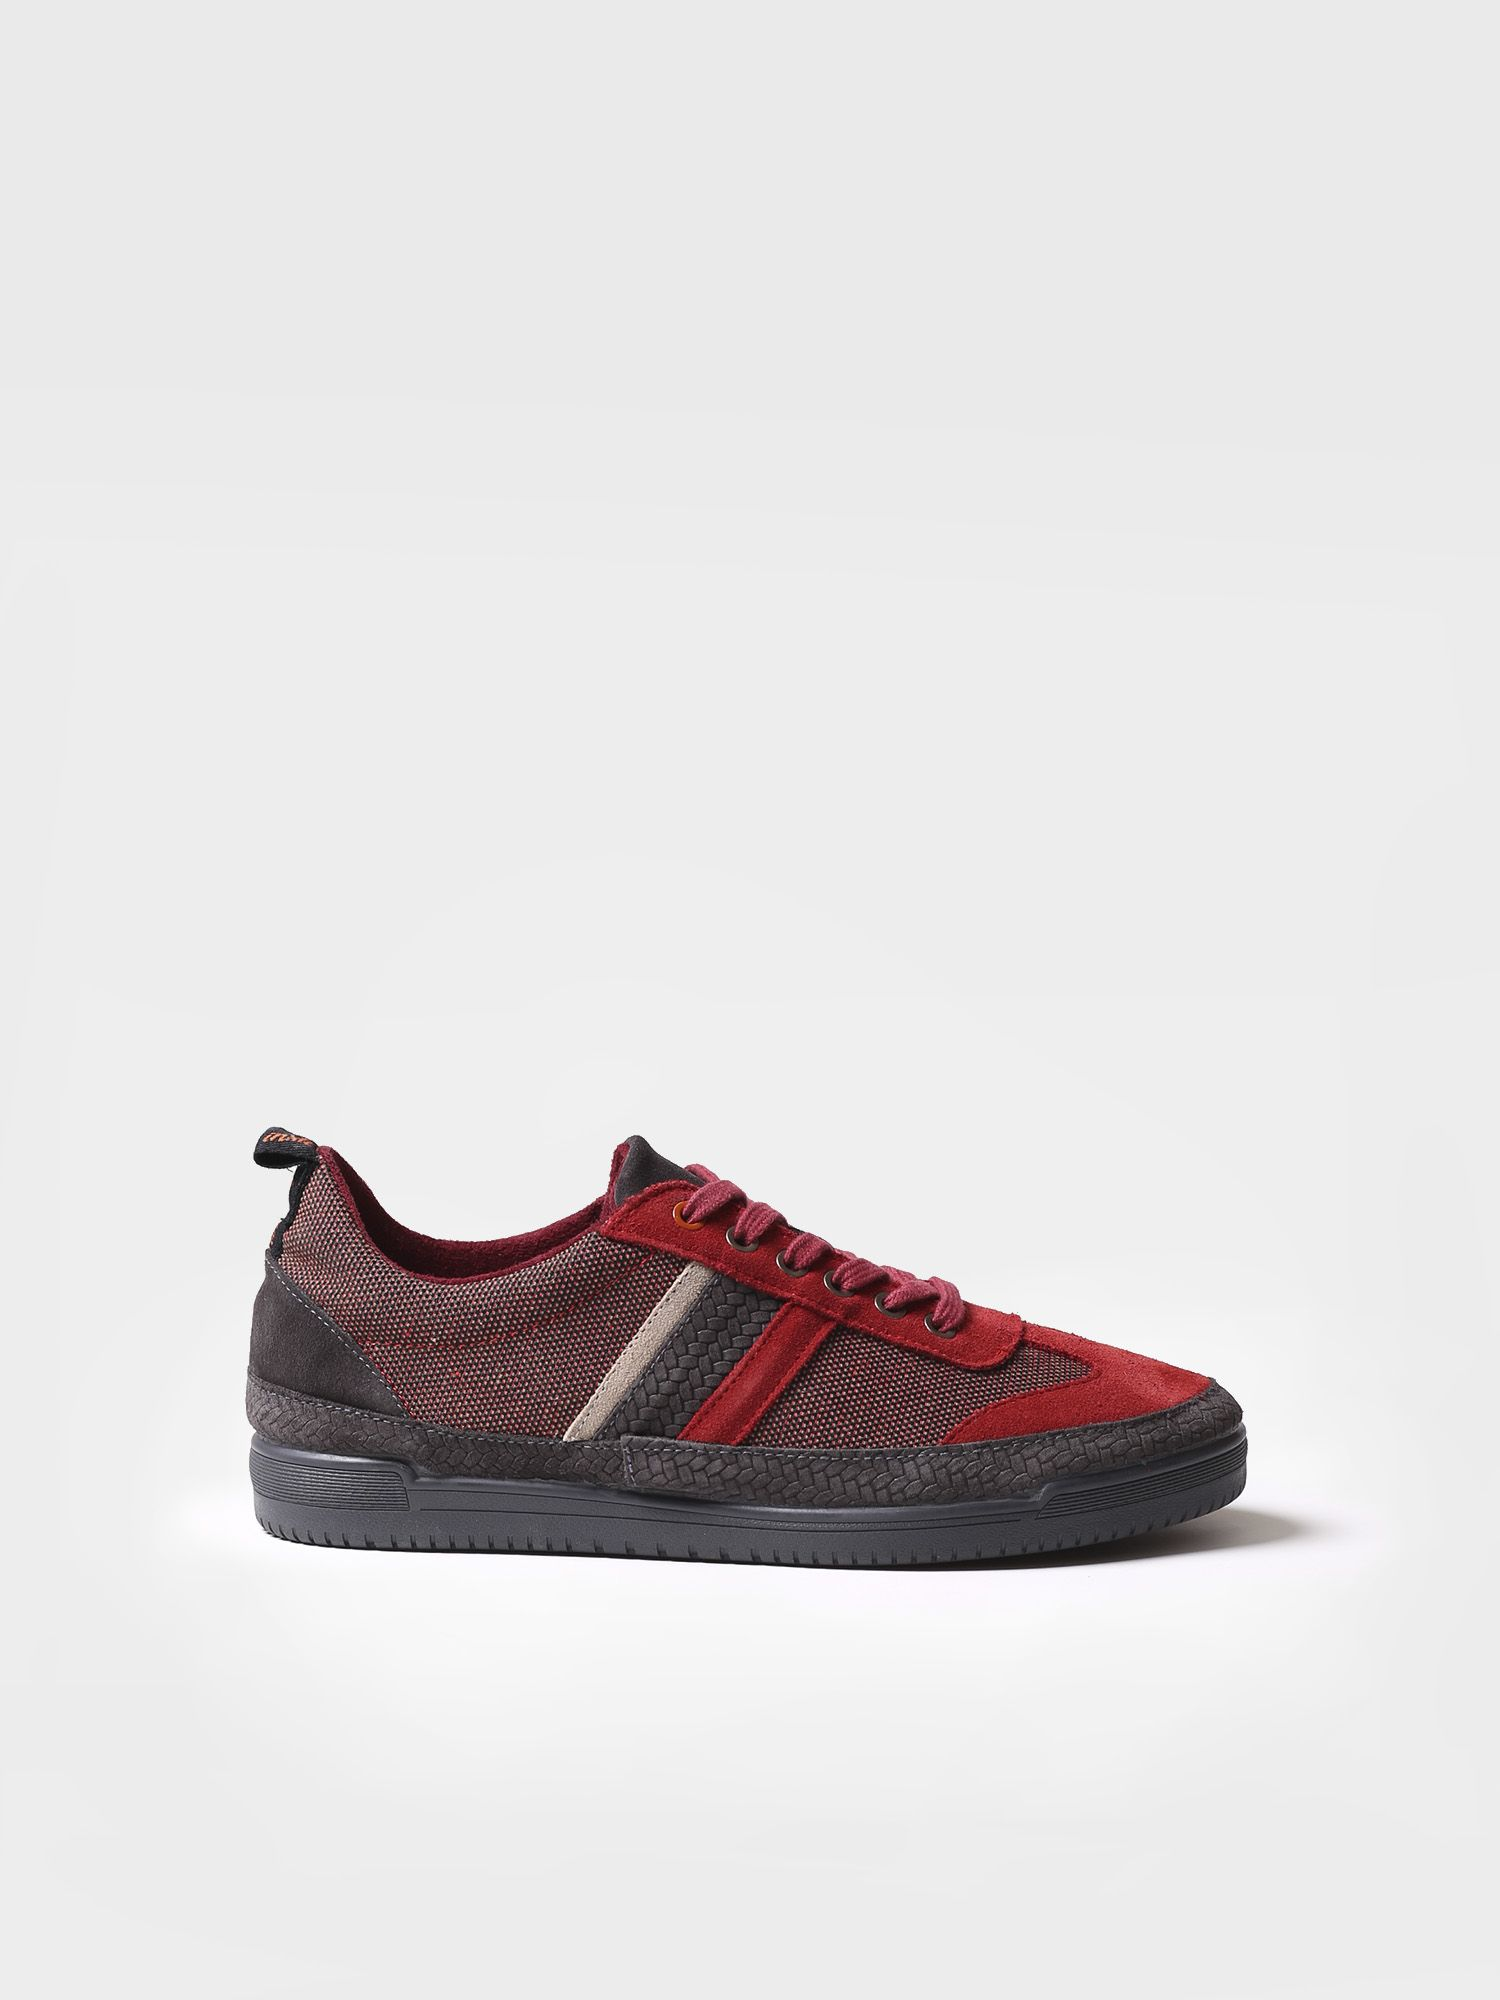 Sneaker for men made of fabric and suede - GASP-TC